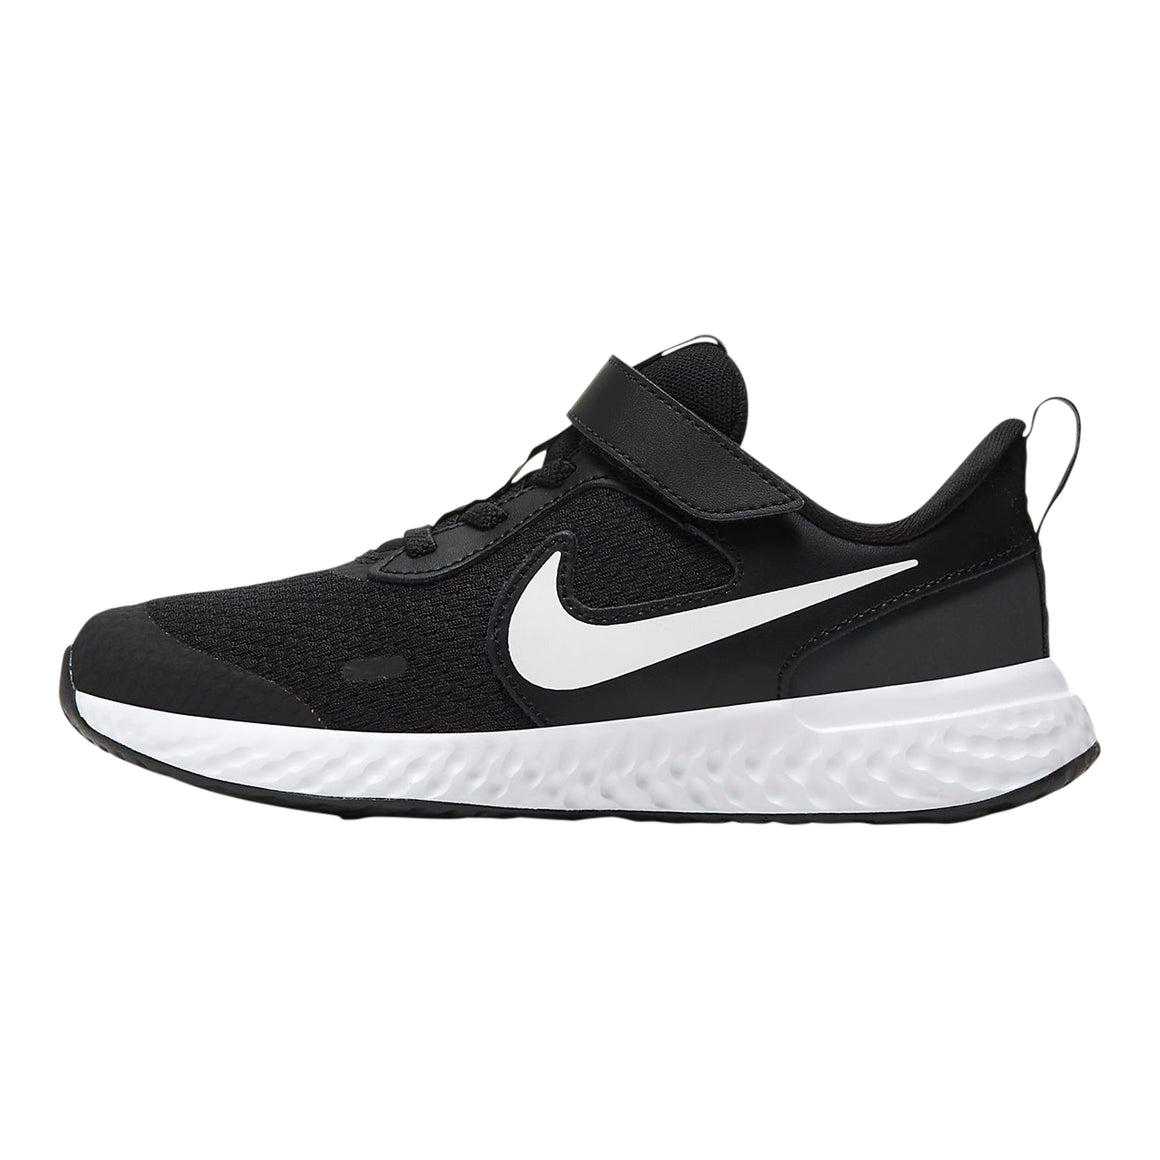 Revolution 5 Running Shoes for Younger Kids in Black/White-Anthracite